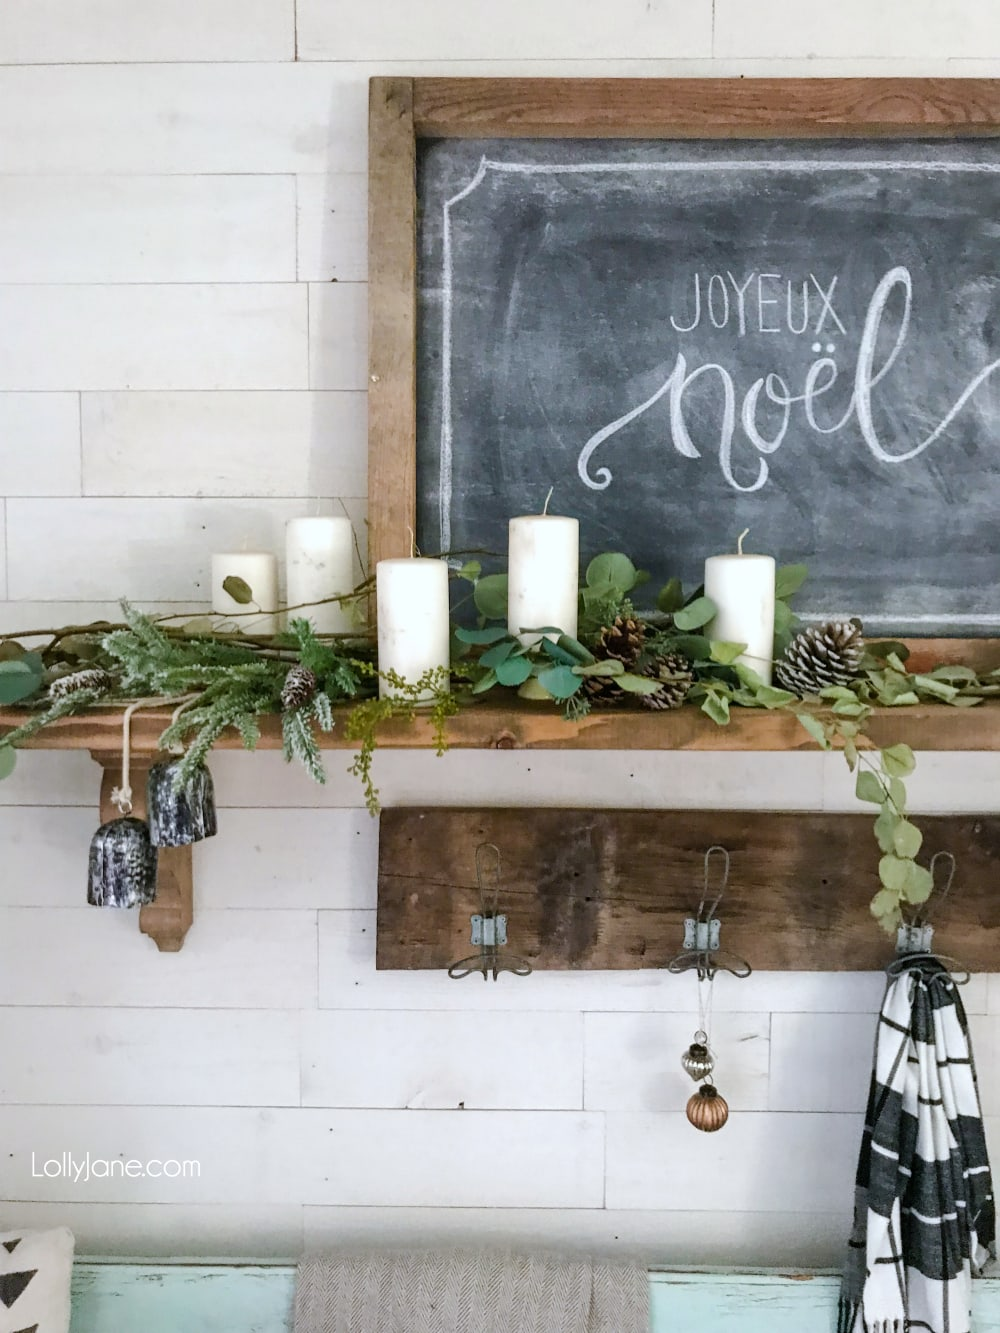 Grab some branches (greenery) from your yard, add a pinecone or two, some $1 store candles and a chalkboard with a festive phrase and BAM. Instant Christmas/winter mantel! EASY PEASY! #diy #christmasdecorations #winterdecor